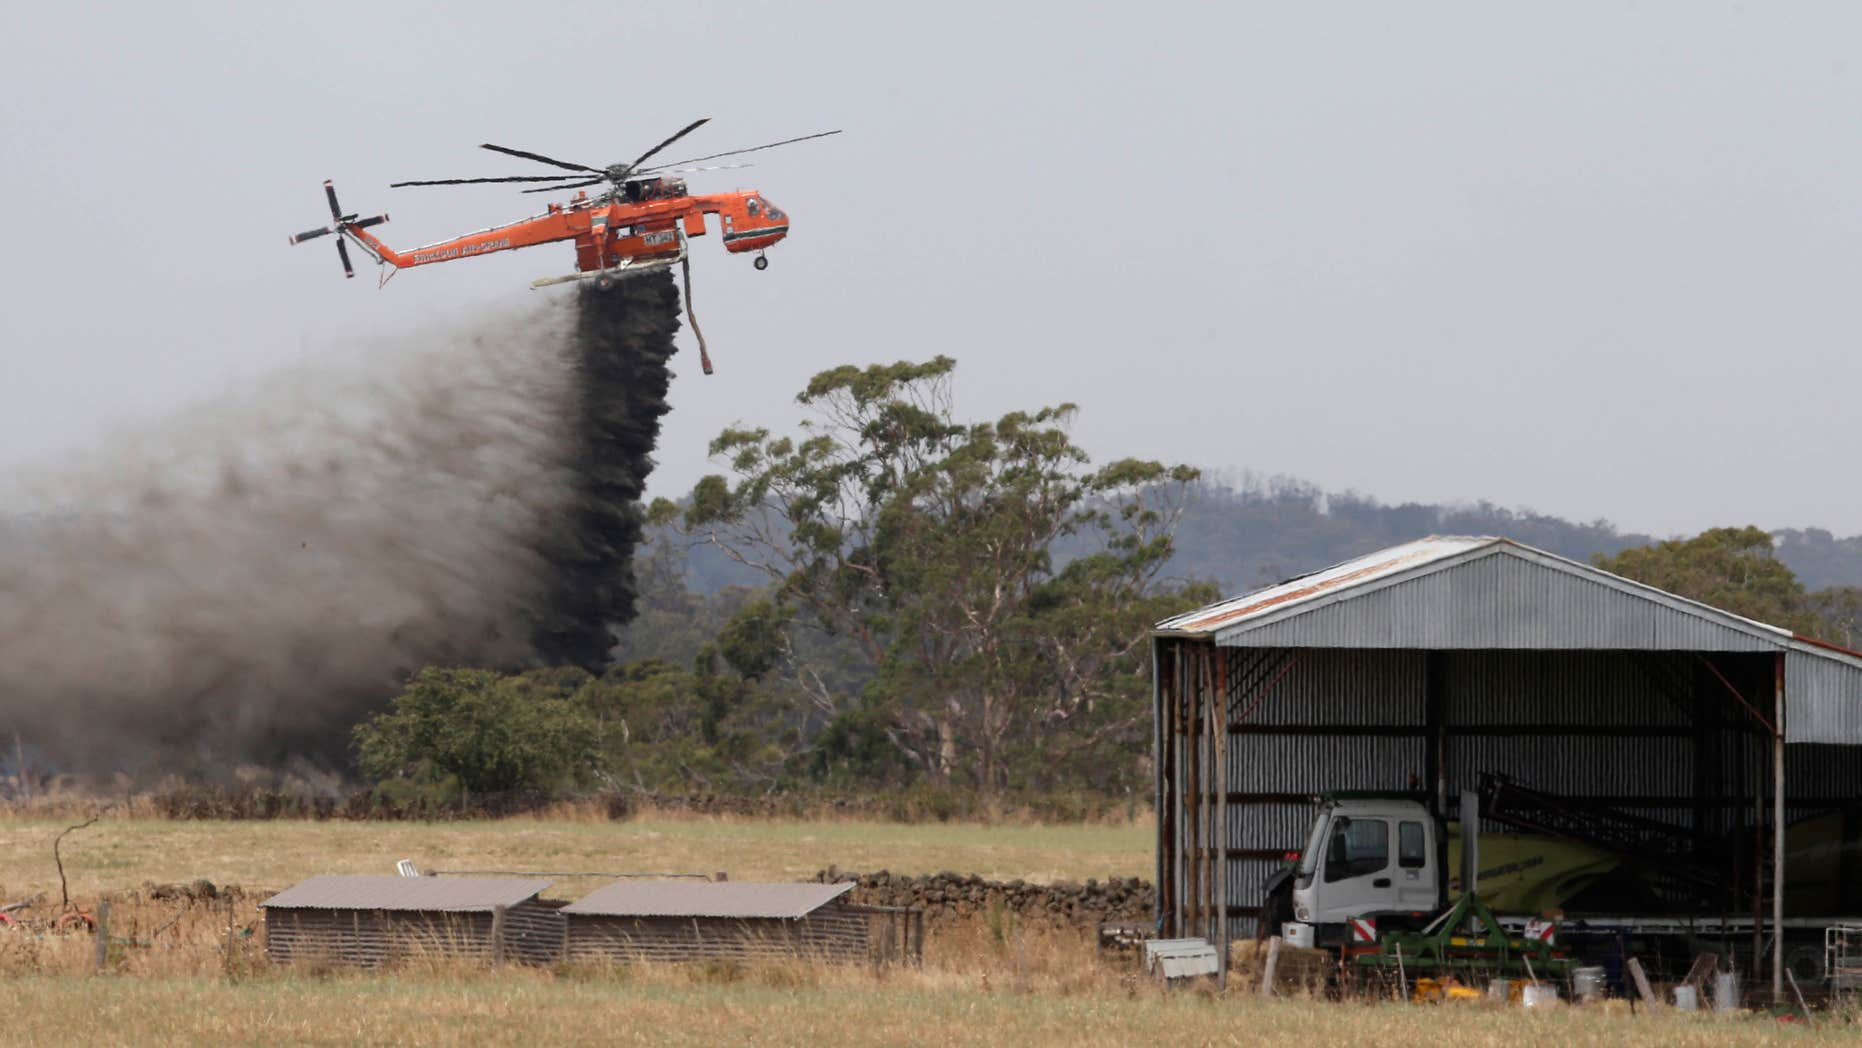 In this Sunday, Dec. 20, 2015 photo, a Skycrane helicopter drops a load of water as it works to hold back a wildfire from the hamlet of Claredon in Victoria, Australia.